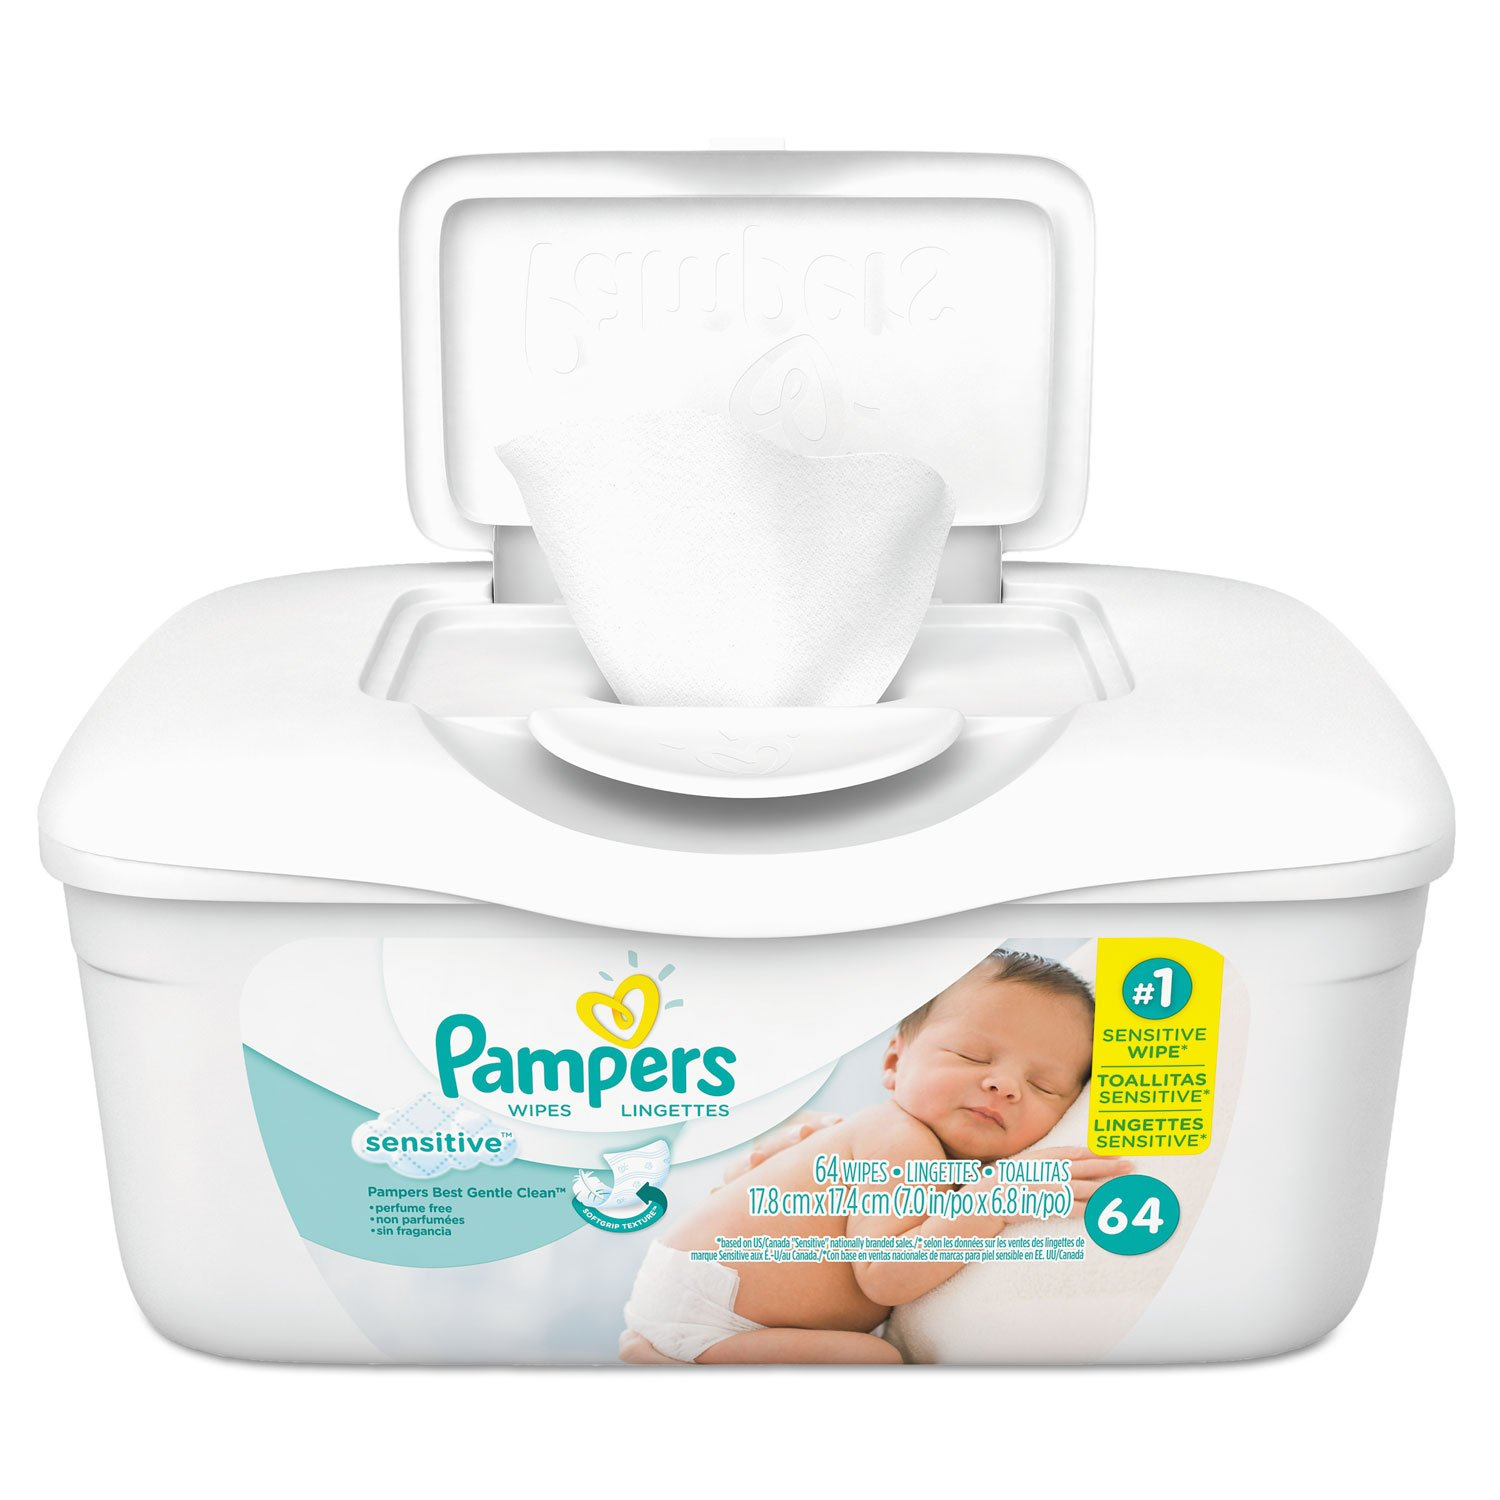 Amazon.com: Pampers 10037000195051 Sensitive Baby Wipes, White, Cotton, Unscented, 64/tub, 8 Tub/carton: Industrial & Scientific